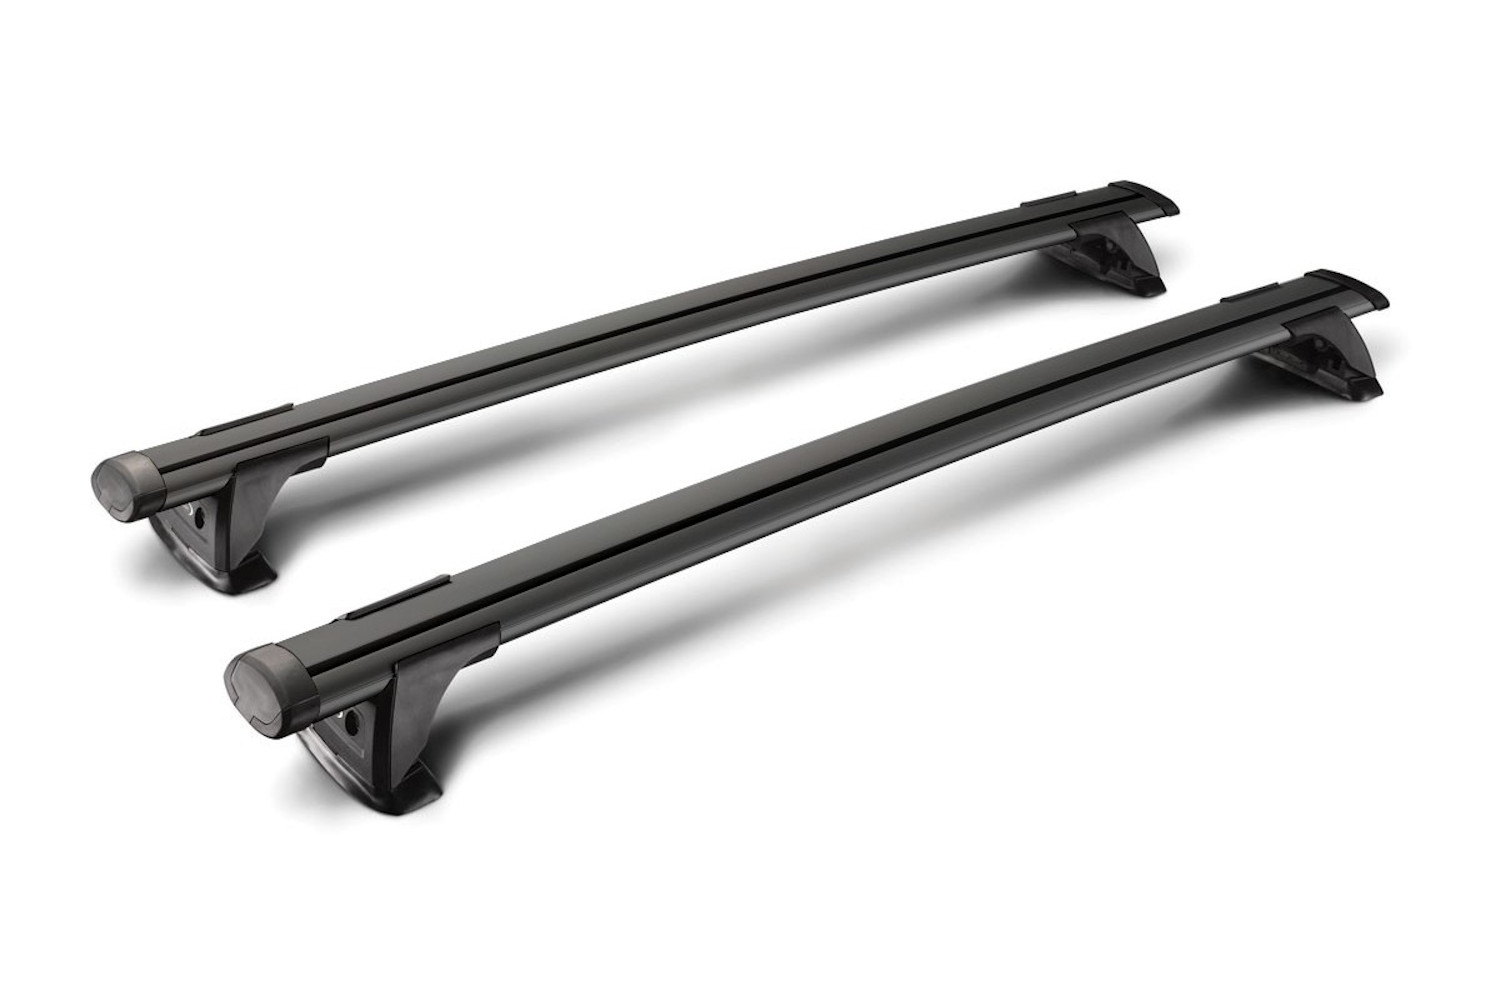 Dakdragers Toyota RAV4 IV (XA40) 2013-2018 Yakima Whispbar Through Bar zwart